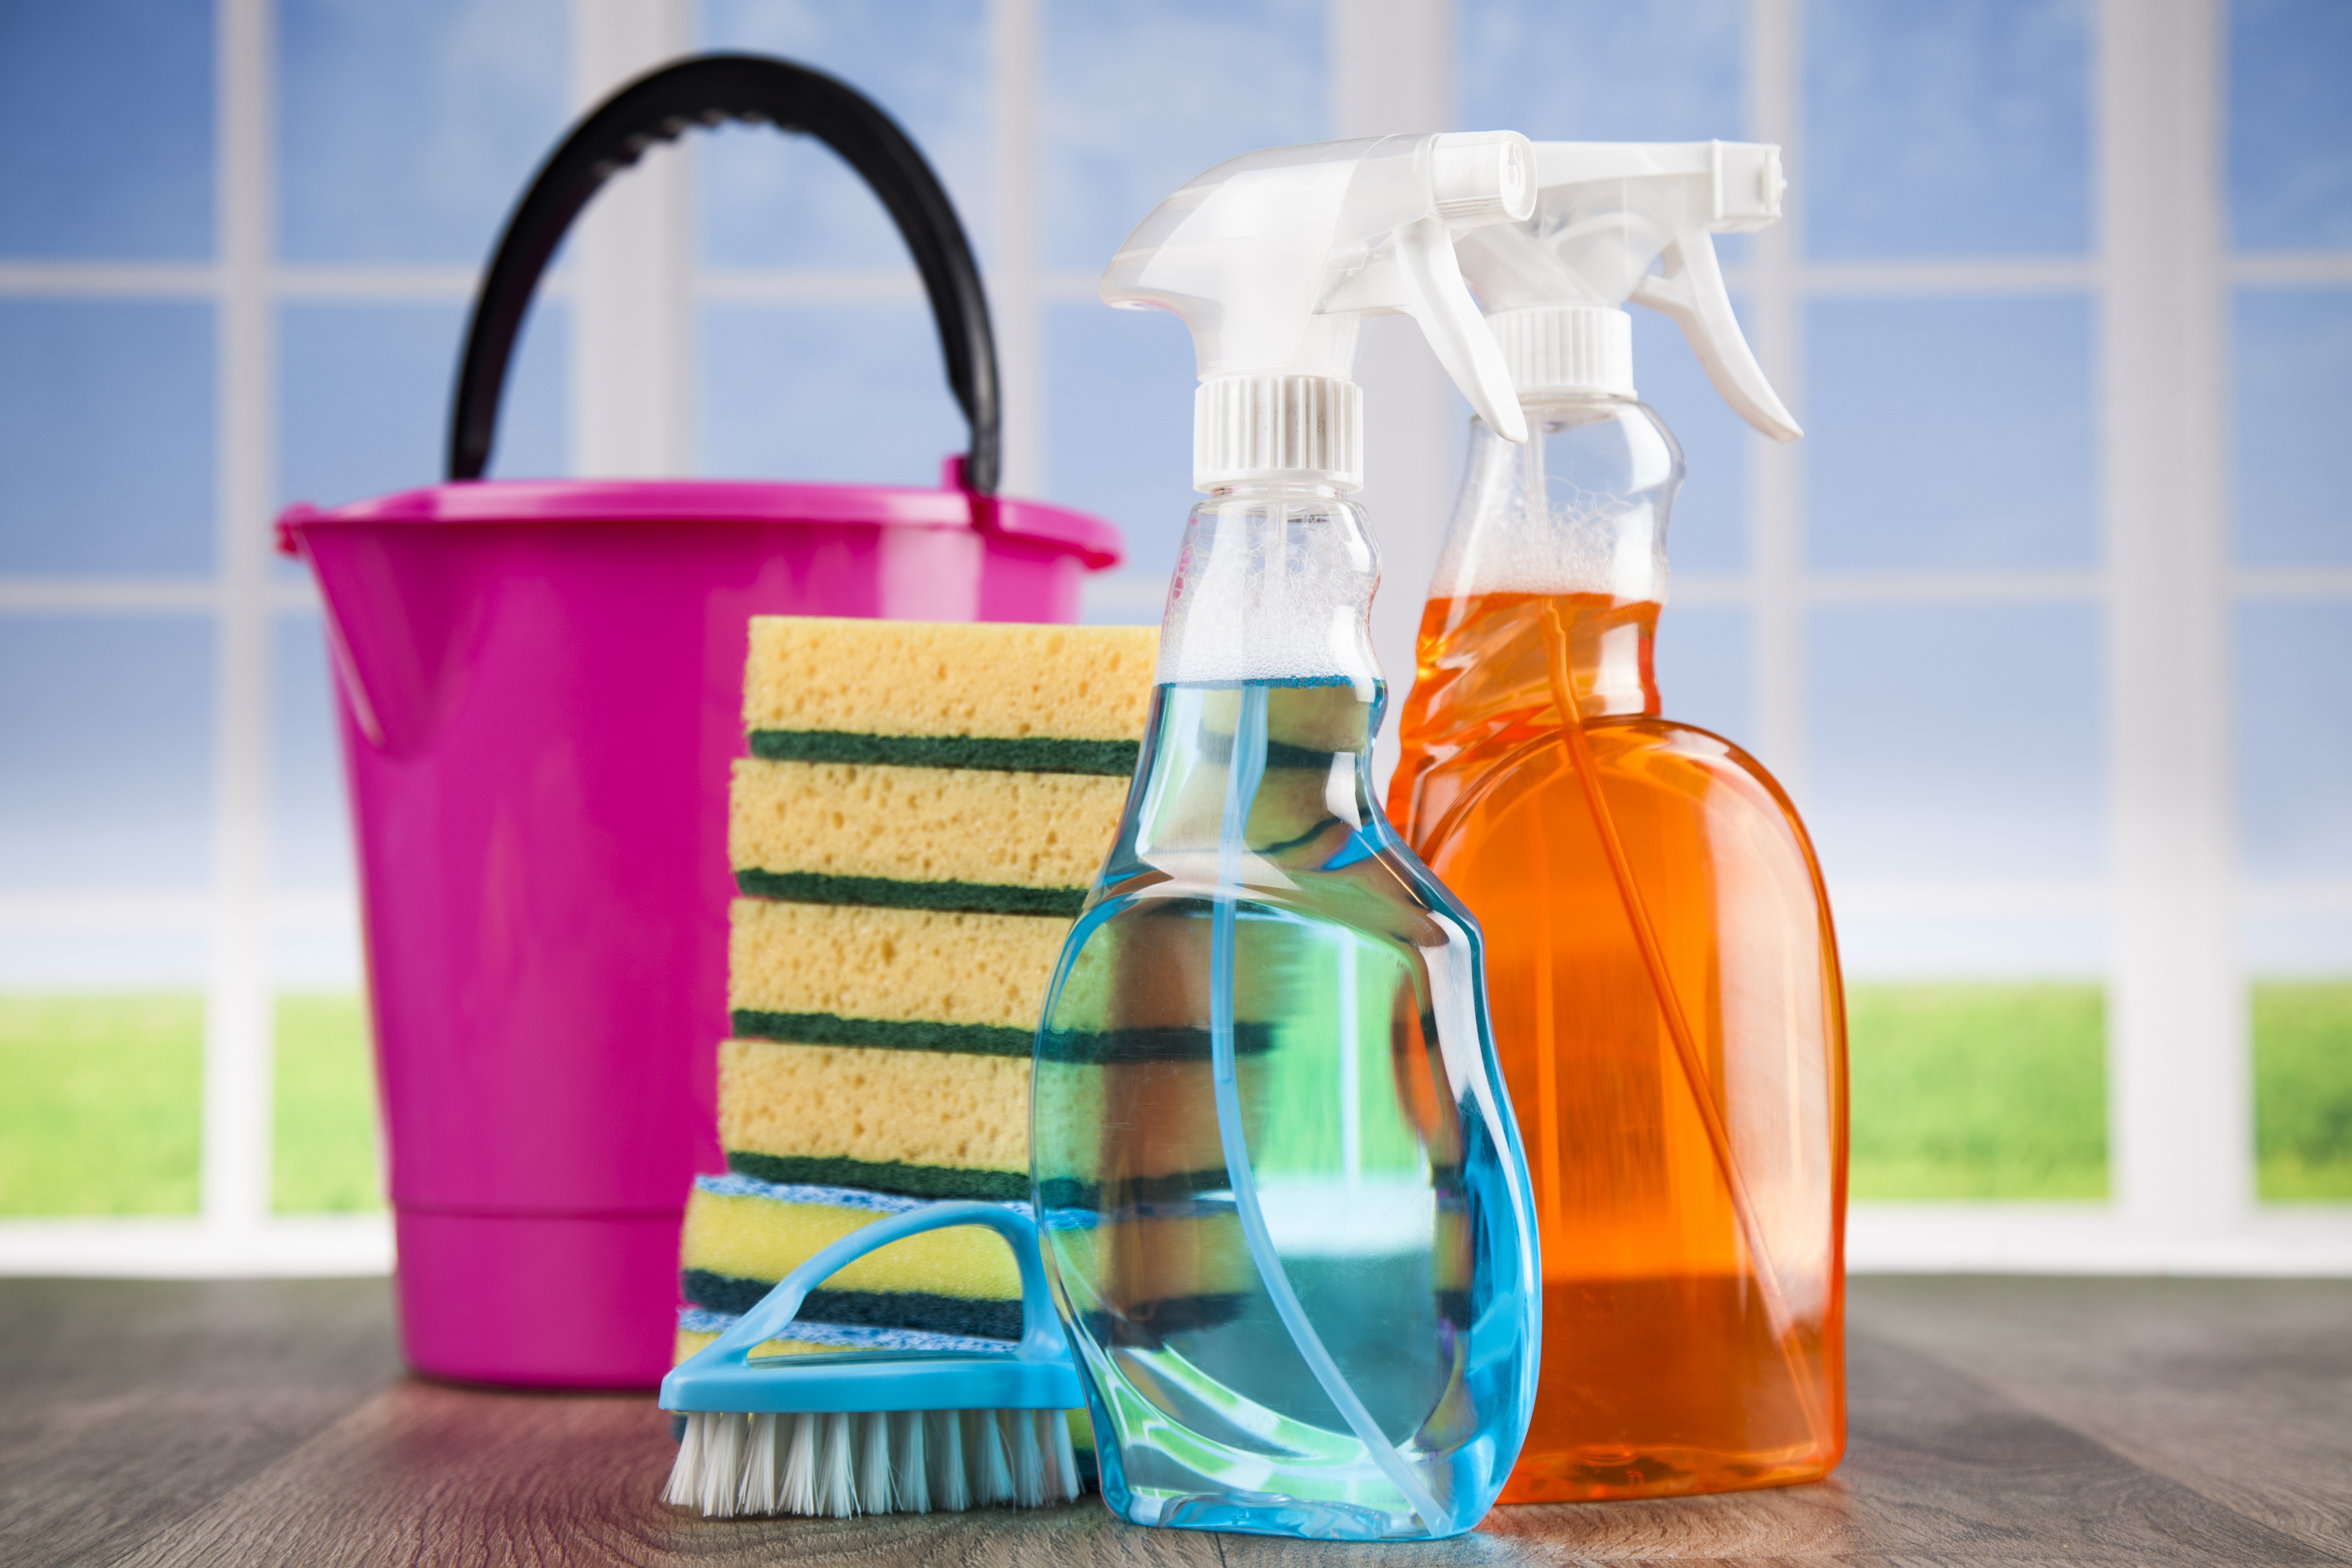 cleaning supplies - spray bottles with bucket and sponges